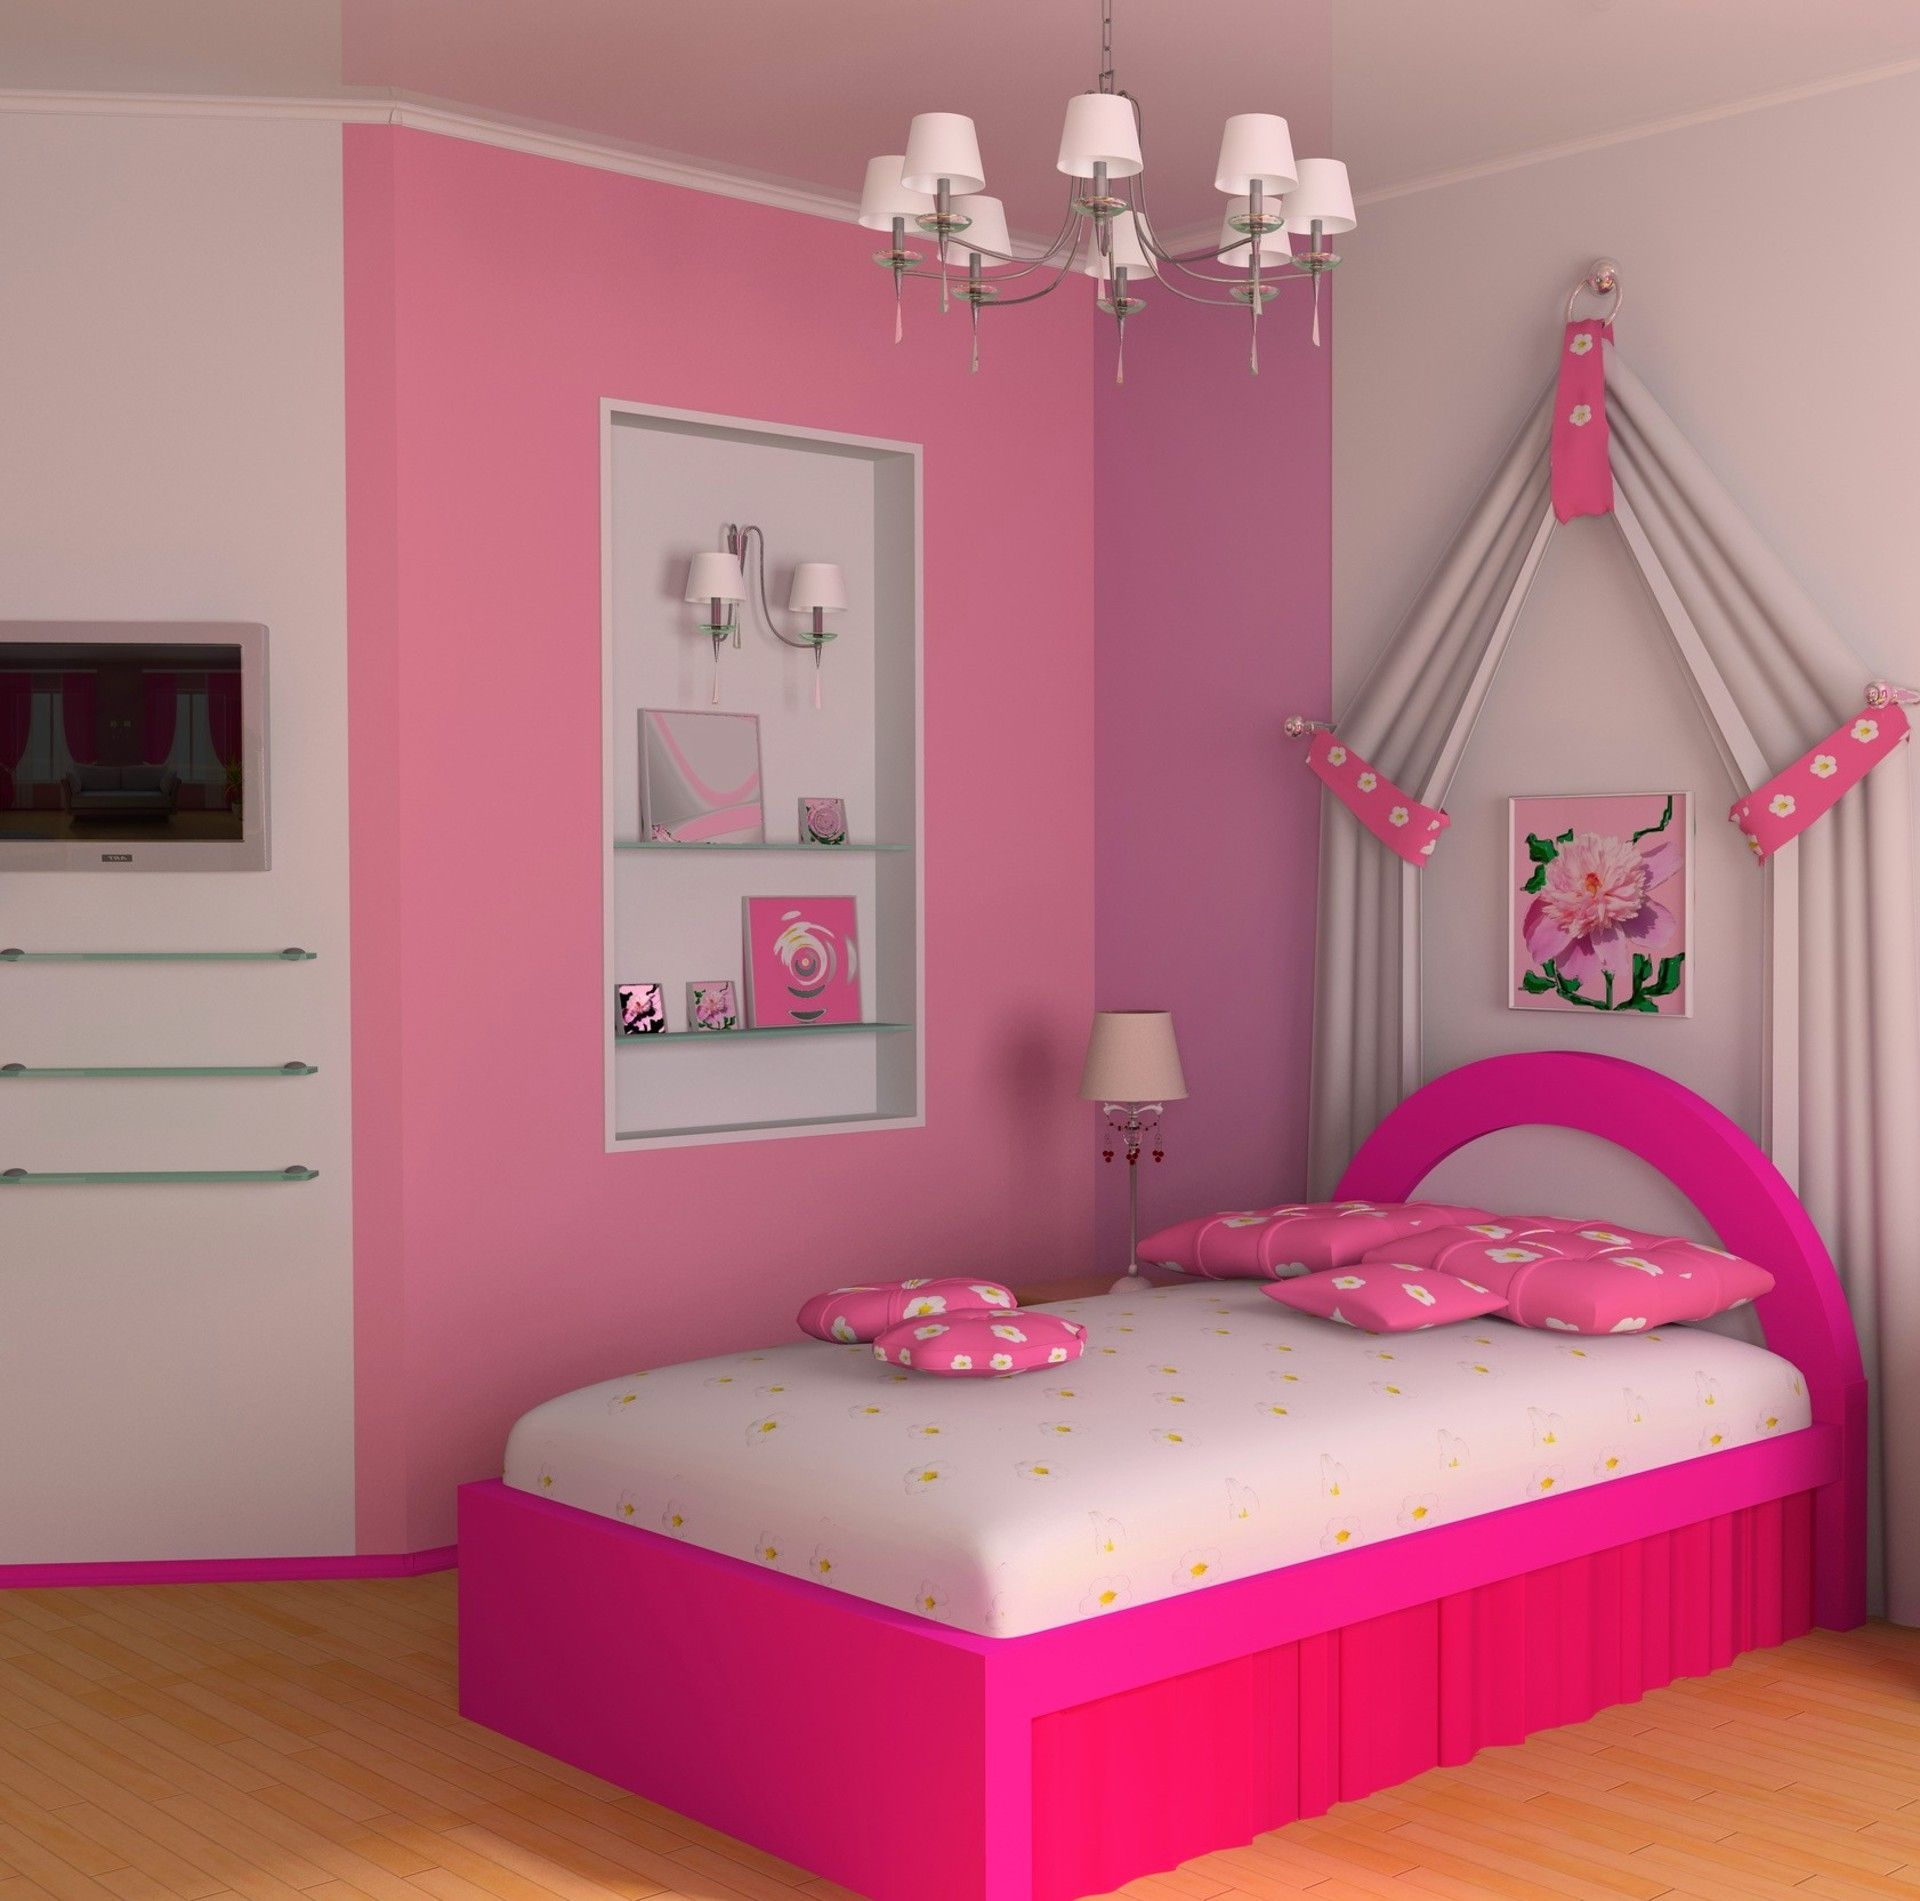 Teenage Girl Small Bedroom Ideas Uk the main points to design a bedroom that resembles a barbie doll